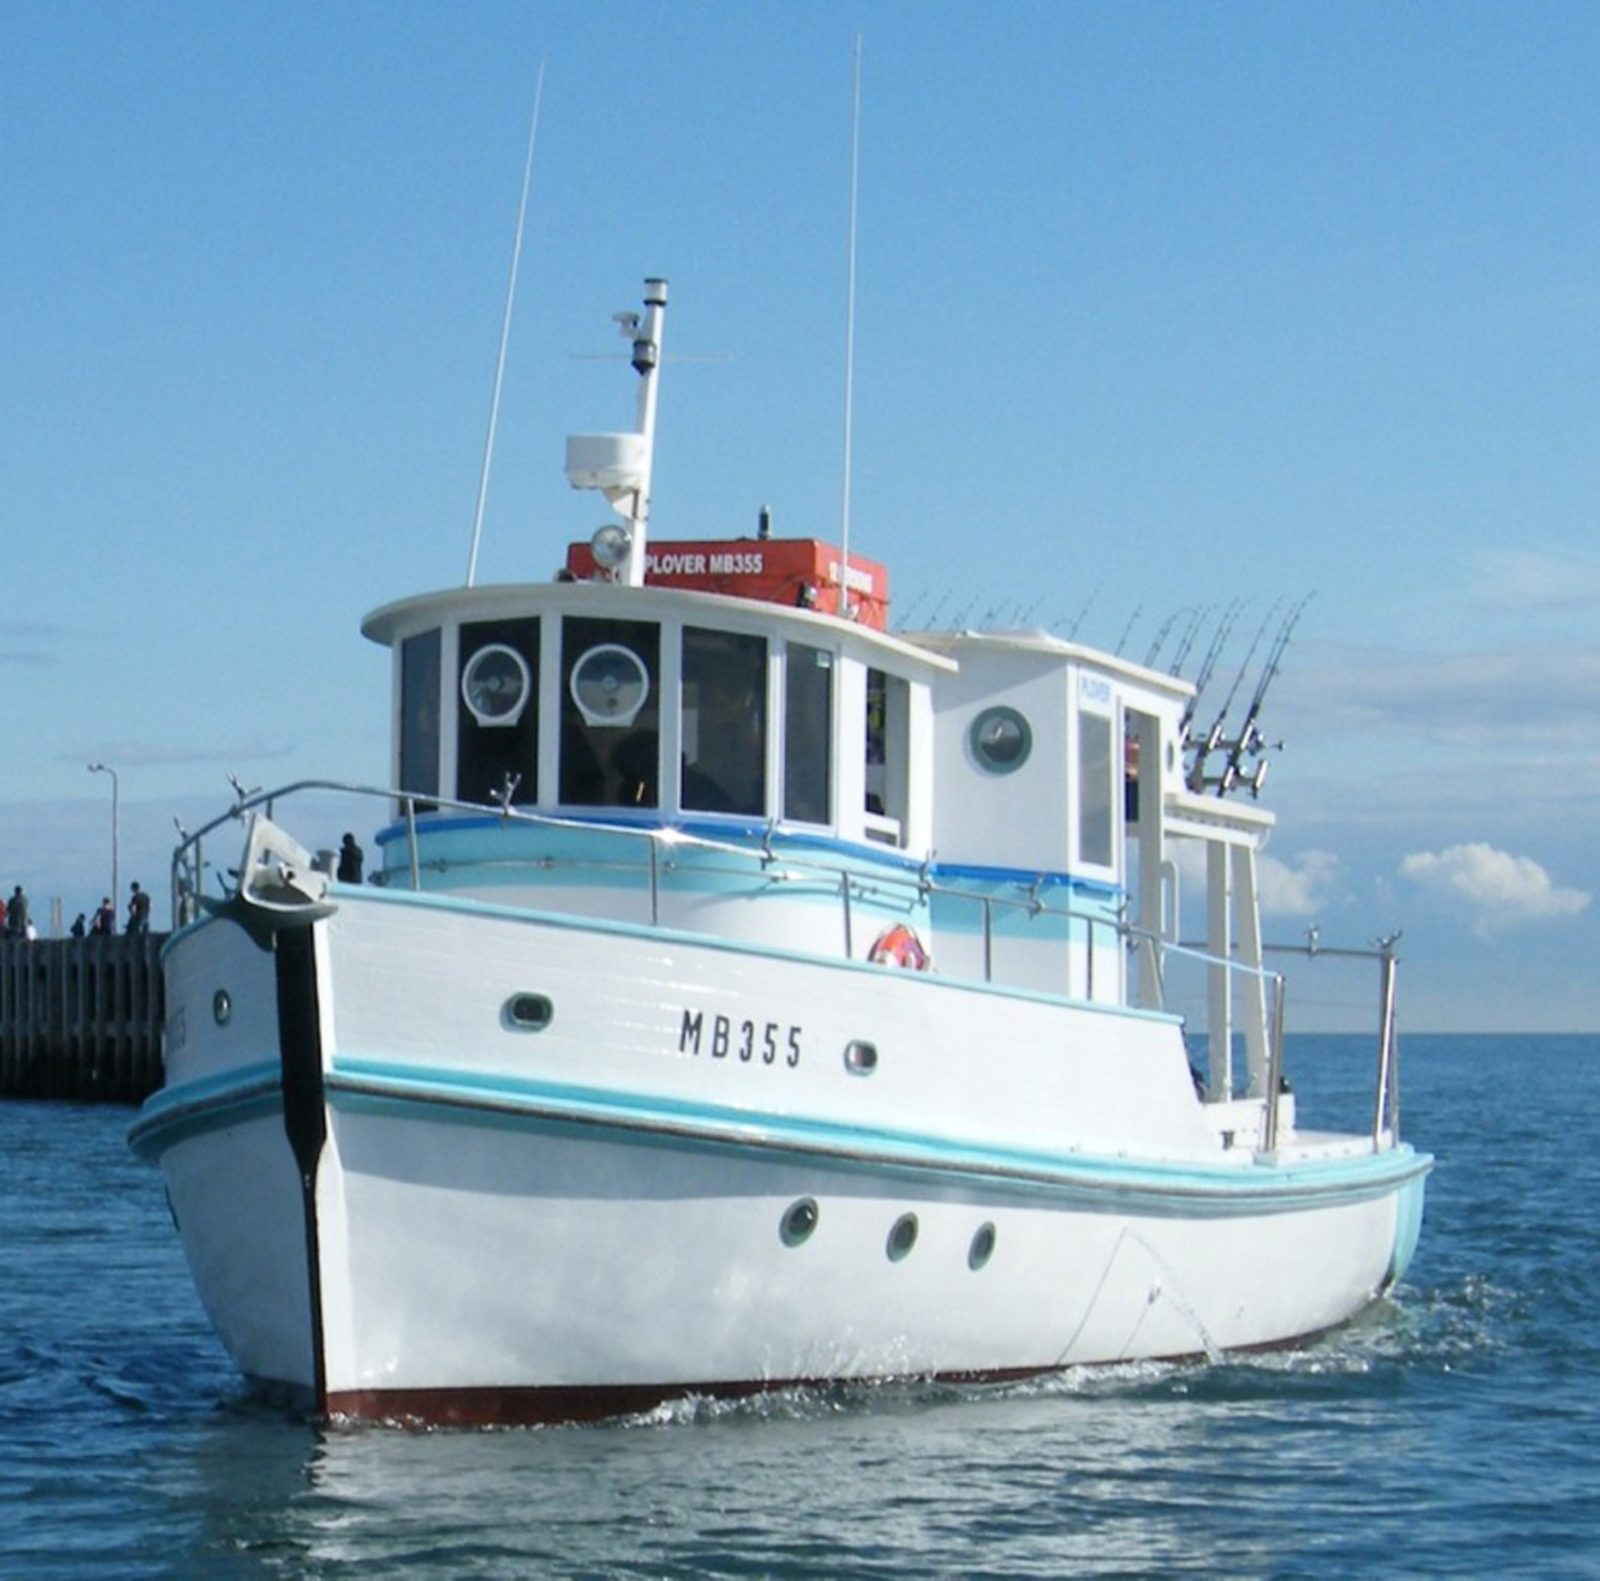 Plover - the heart of Bay Fish N Trips